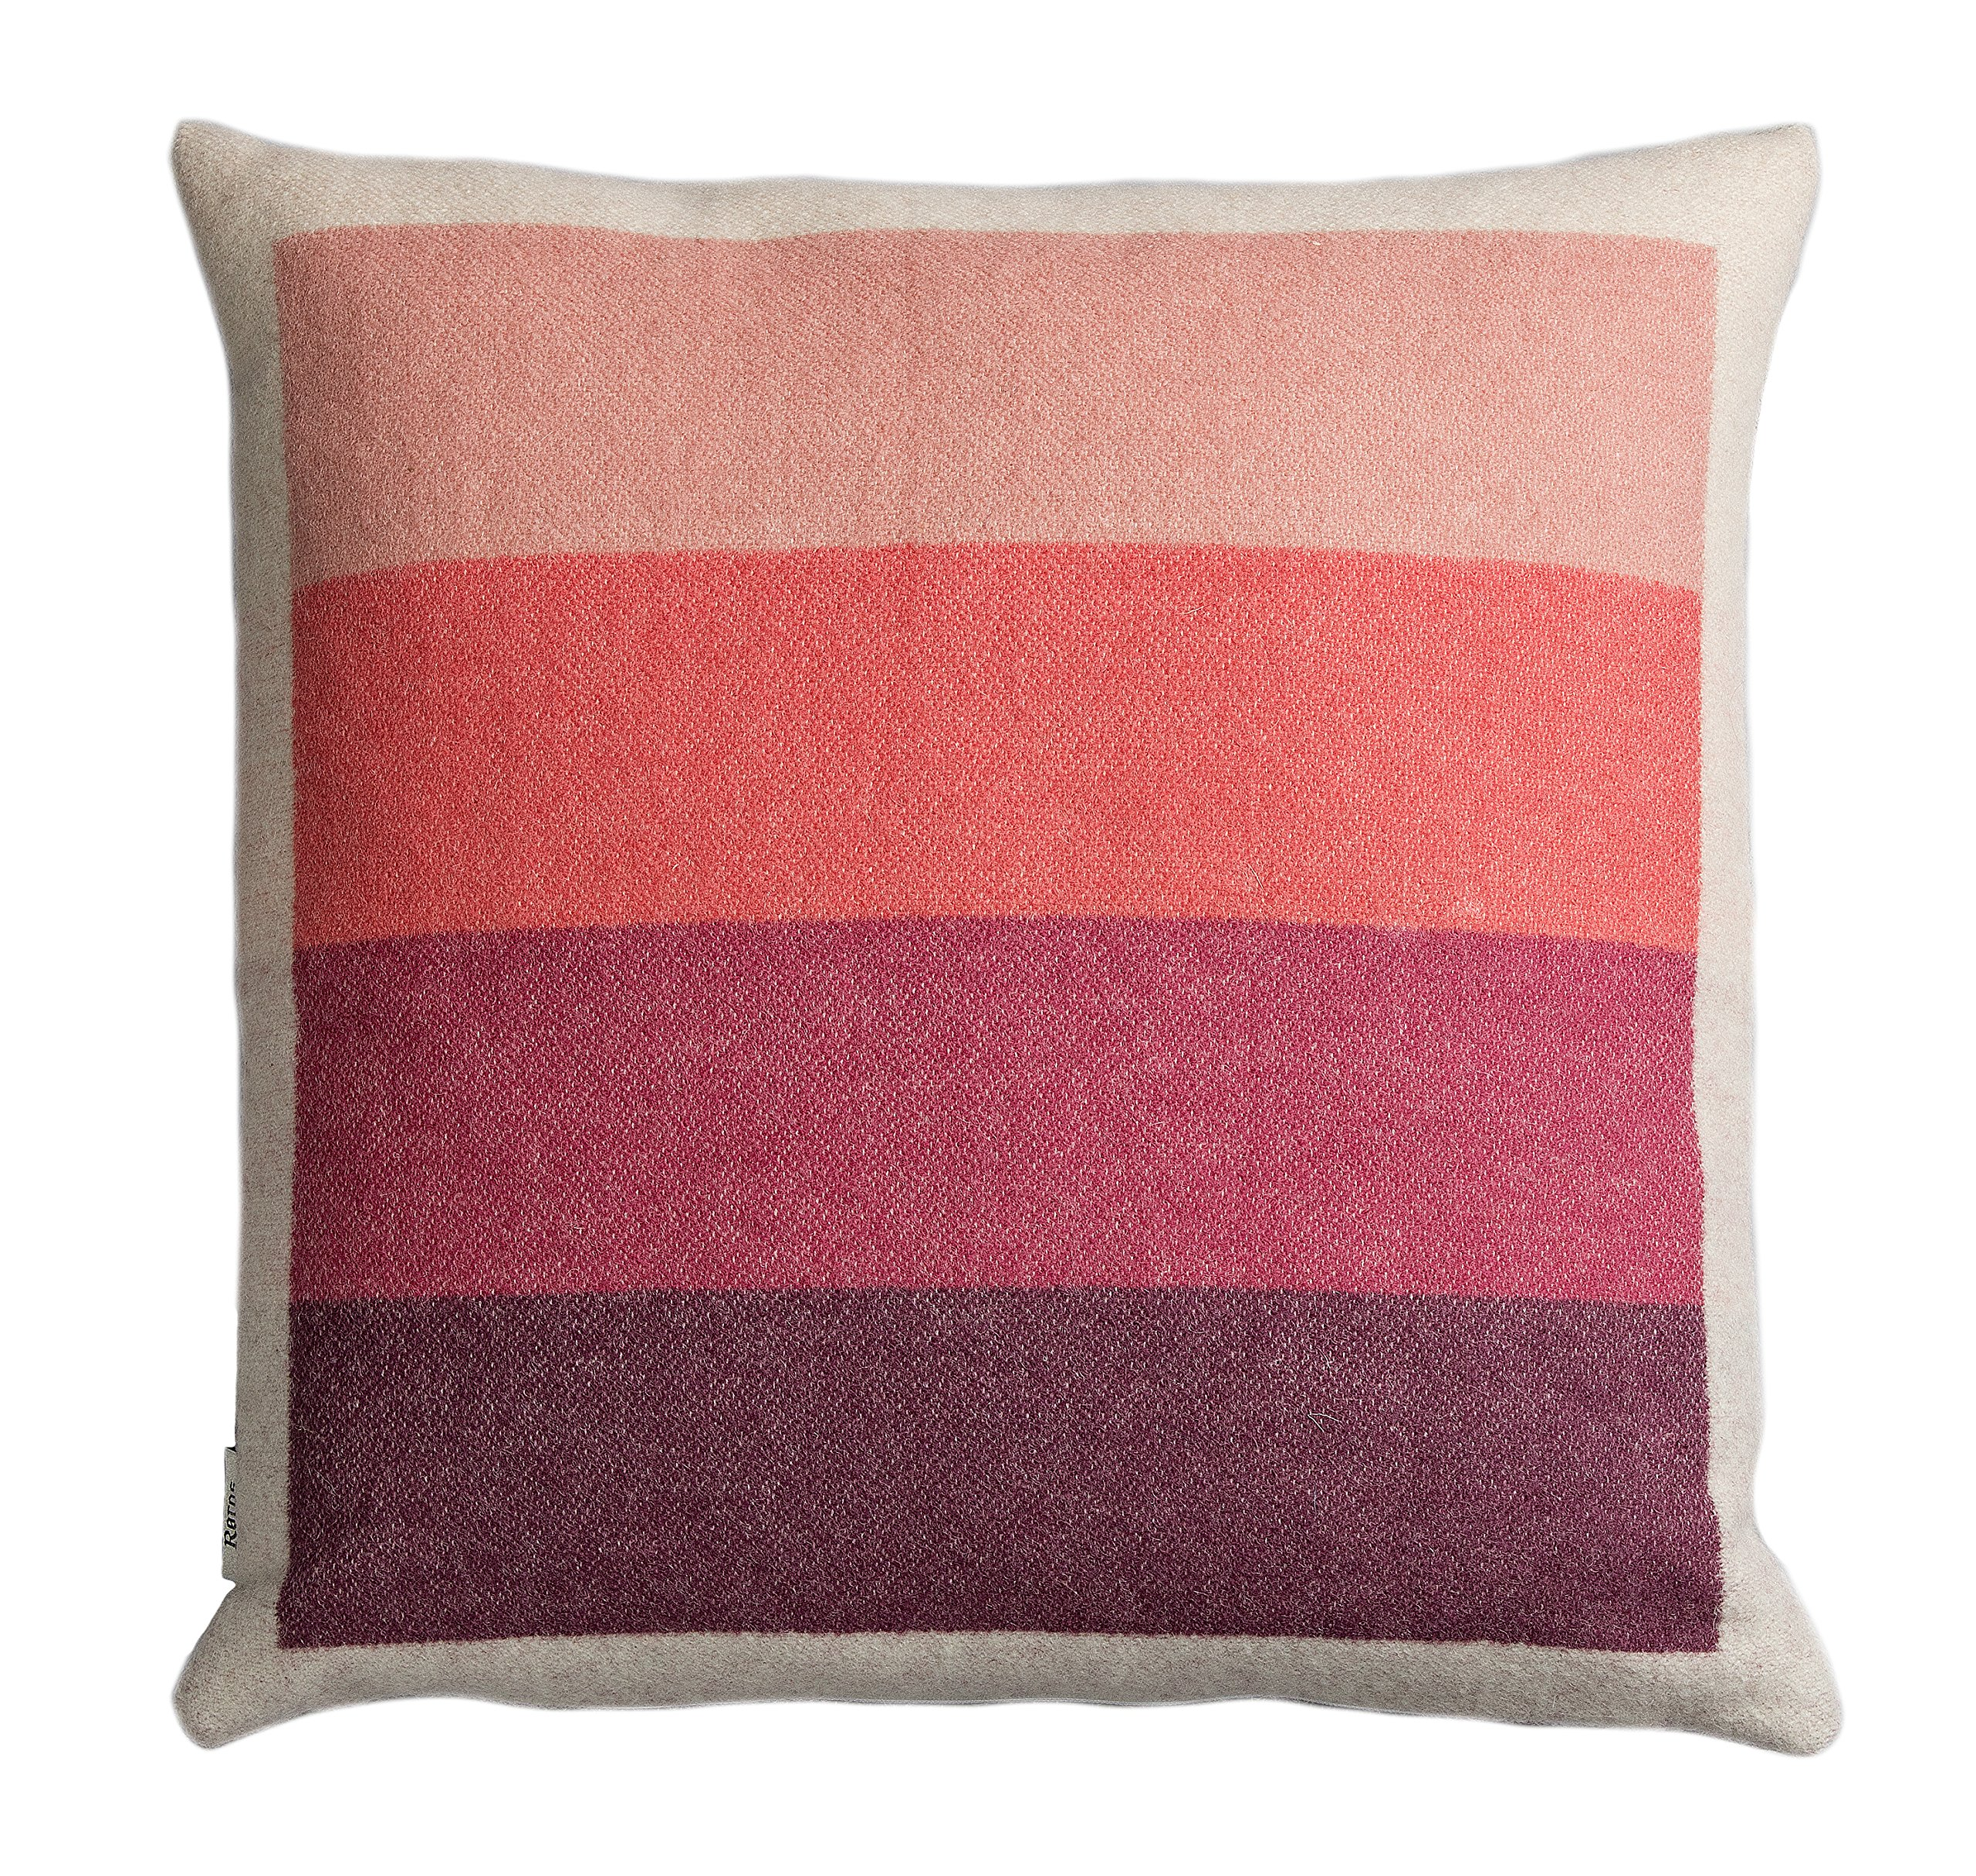 Roros Tweed 100% Norwegian Wool Reversible Designer Pillow Cushion (Asmund Bold in Pink/Green)